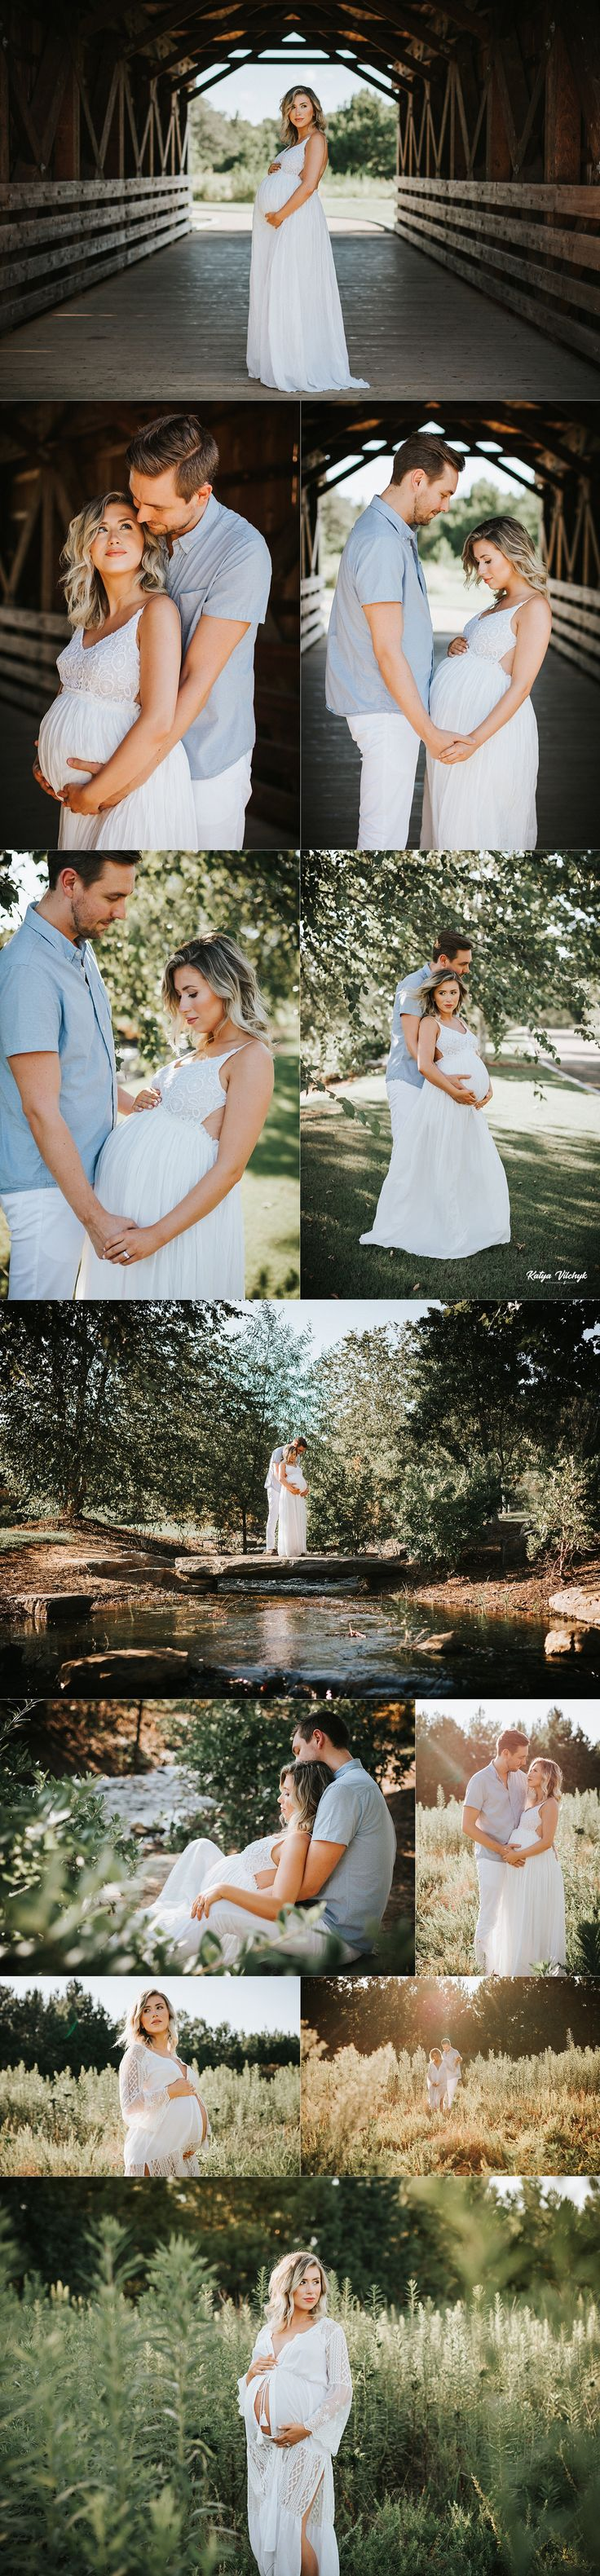 I love this sweet, romantic belly shoot! Such pretty photography and her belly i…